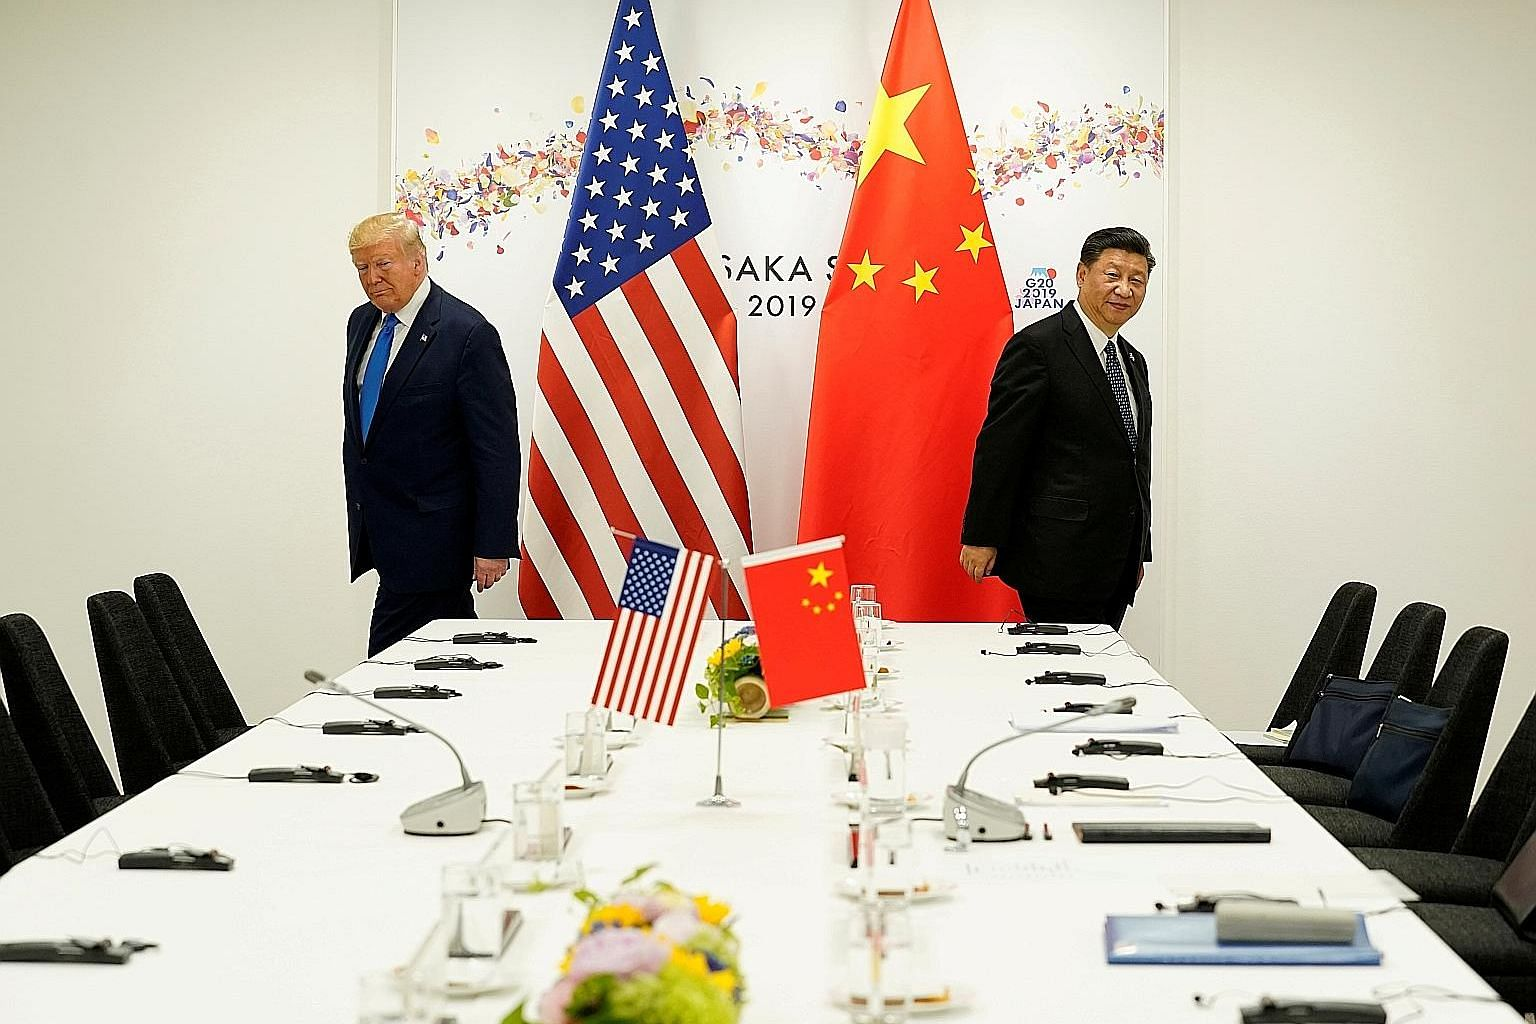 US President Donald Trump and Chinese President Xi Jinping attending the Group of 20 summit in Japan last year. After months of threats, Mr Trump has ordered a ban on WeChat and TikTok, which boasts of having two billion registered users in the world